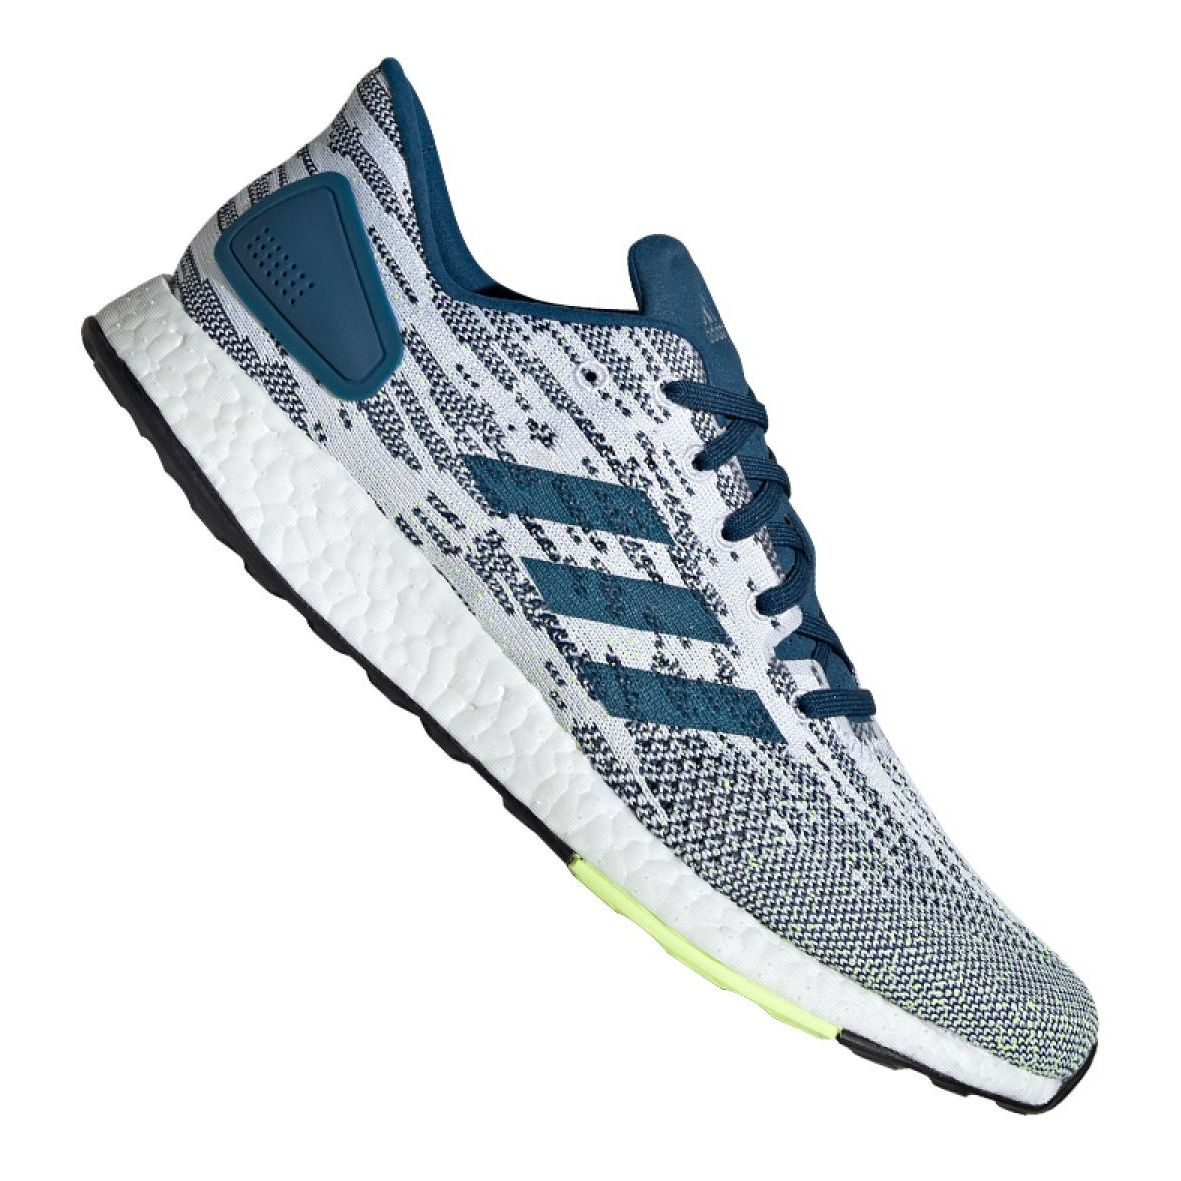 Details about Adidas PureBoost Dpr M B37789 shoes grey